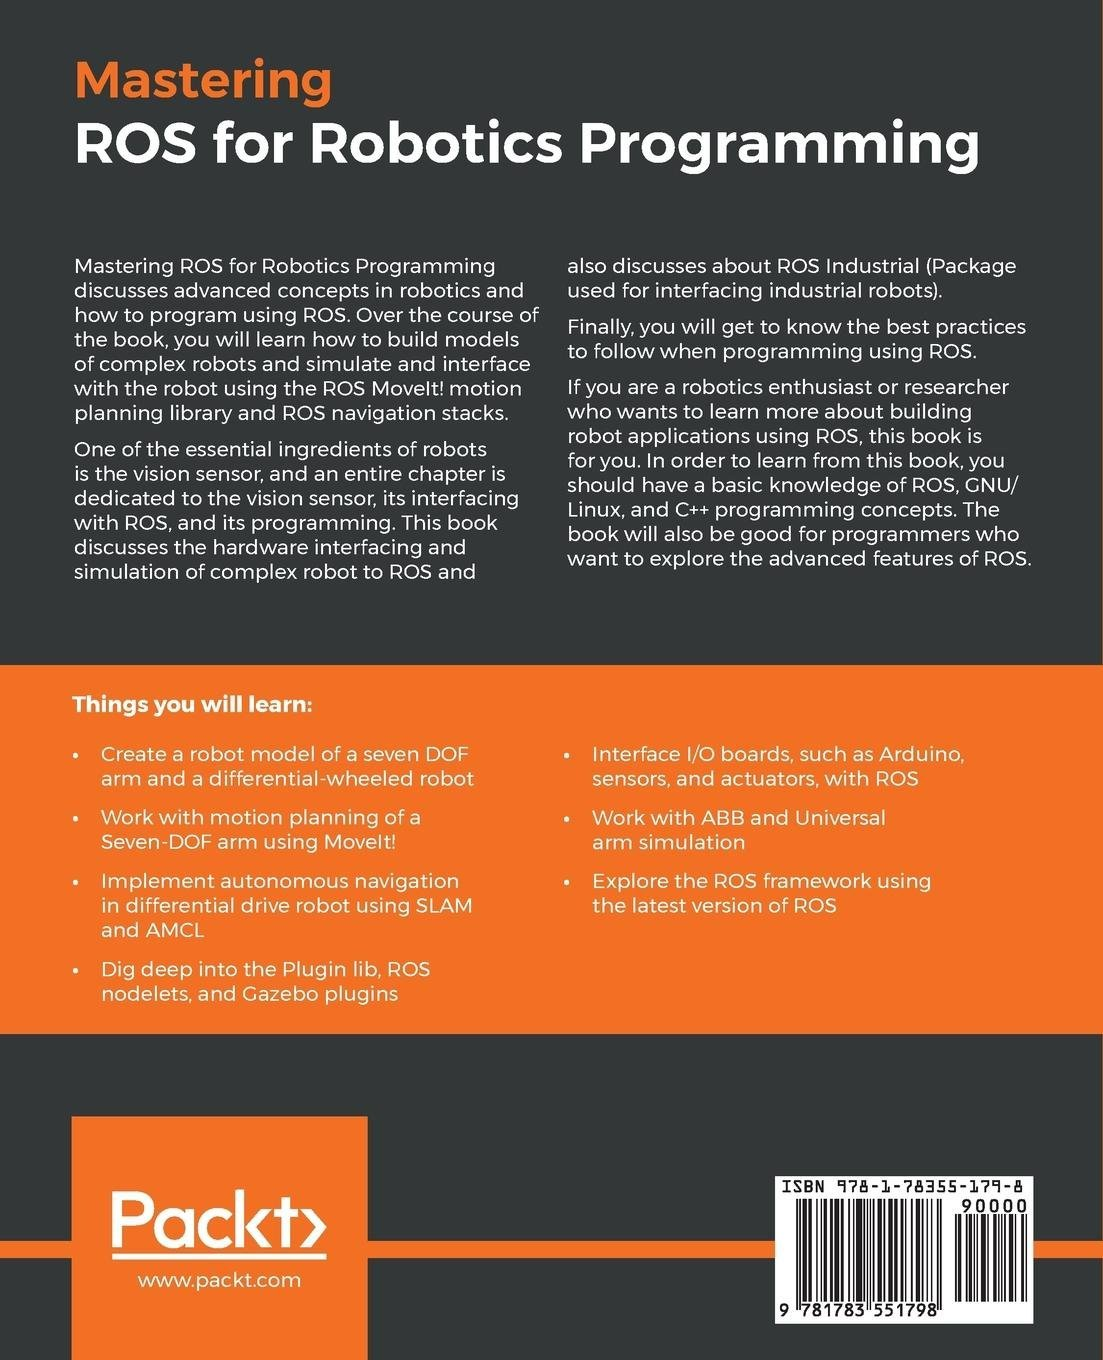 Mastering ROS for Robotics Programming: Design, build, and